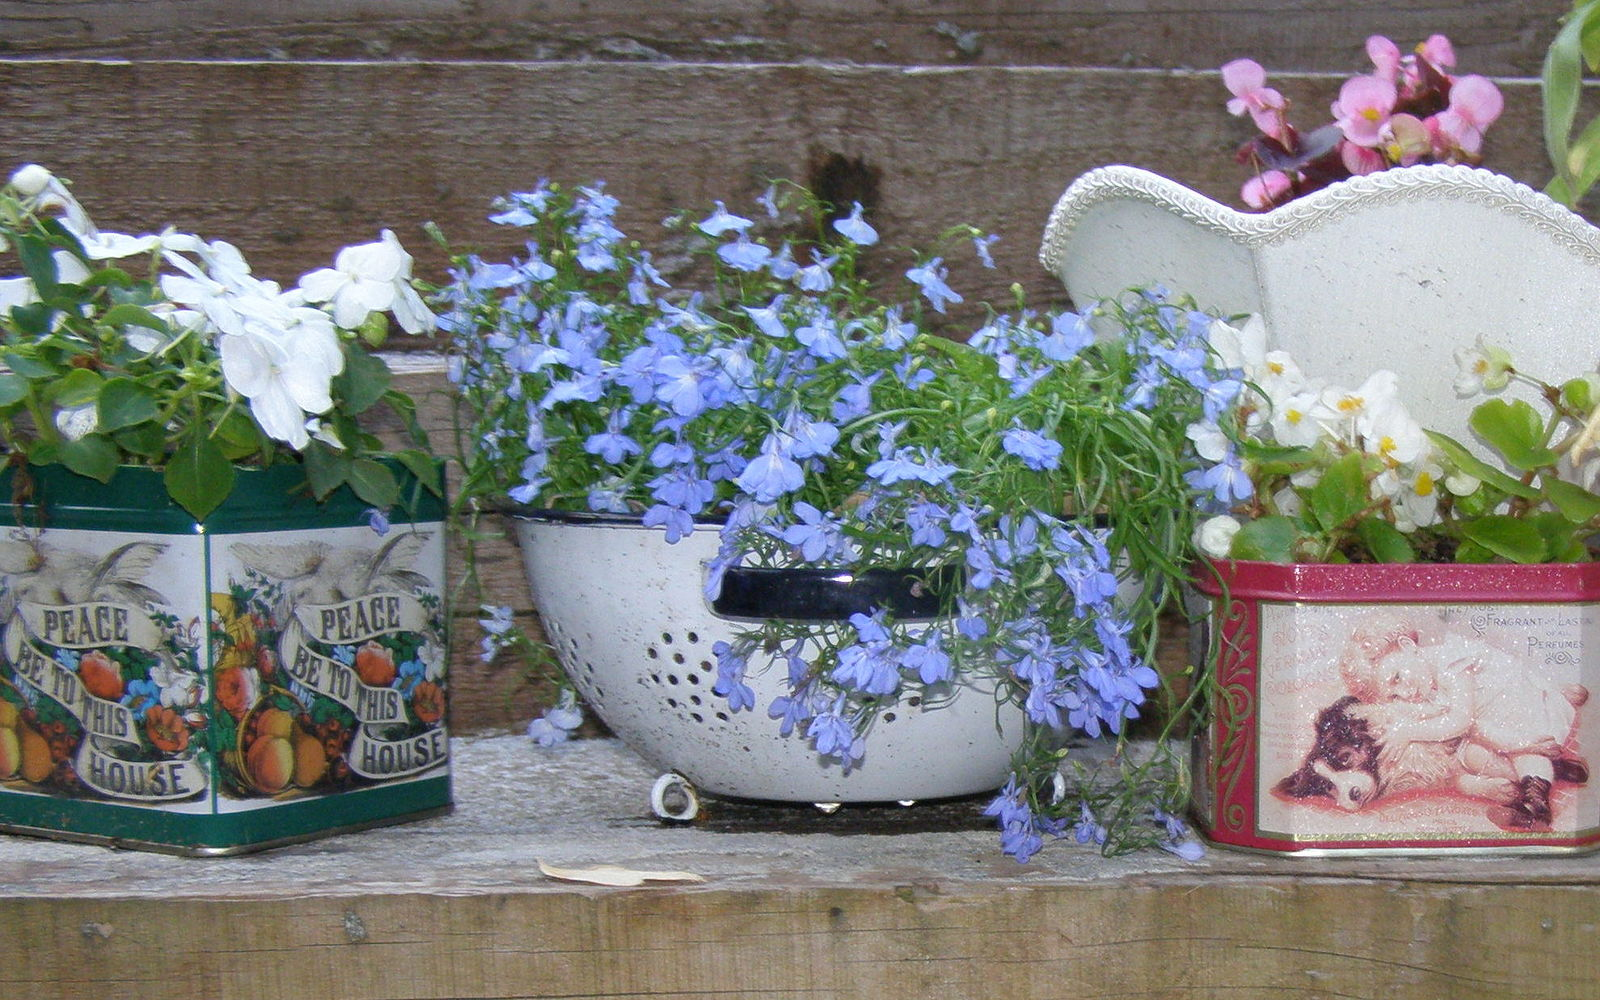 s 15 lovely repurposed items perfect for your garden, Recycle Candy Tins Into Garden Containers